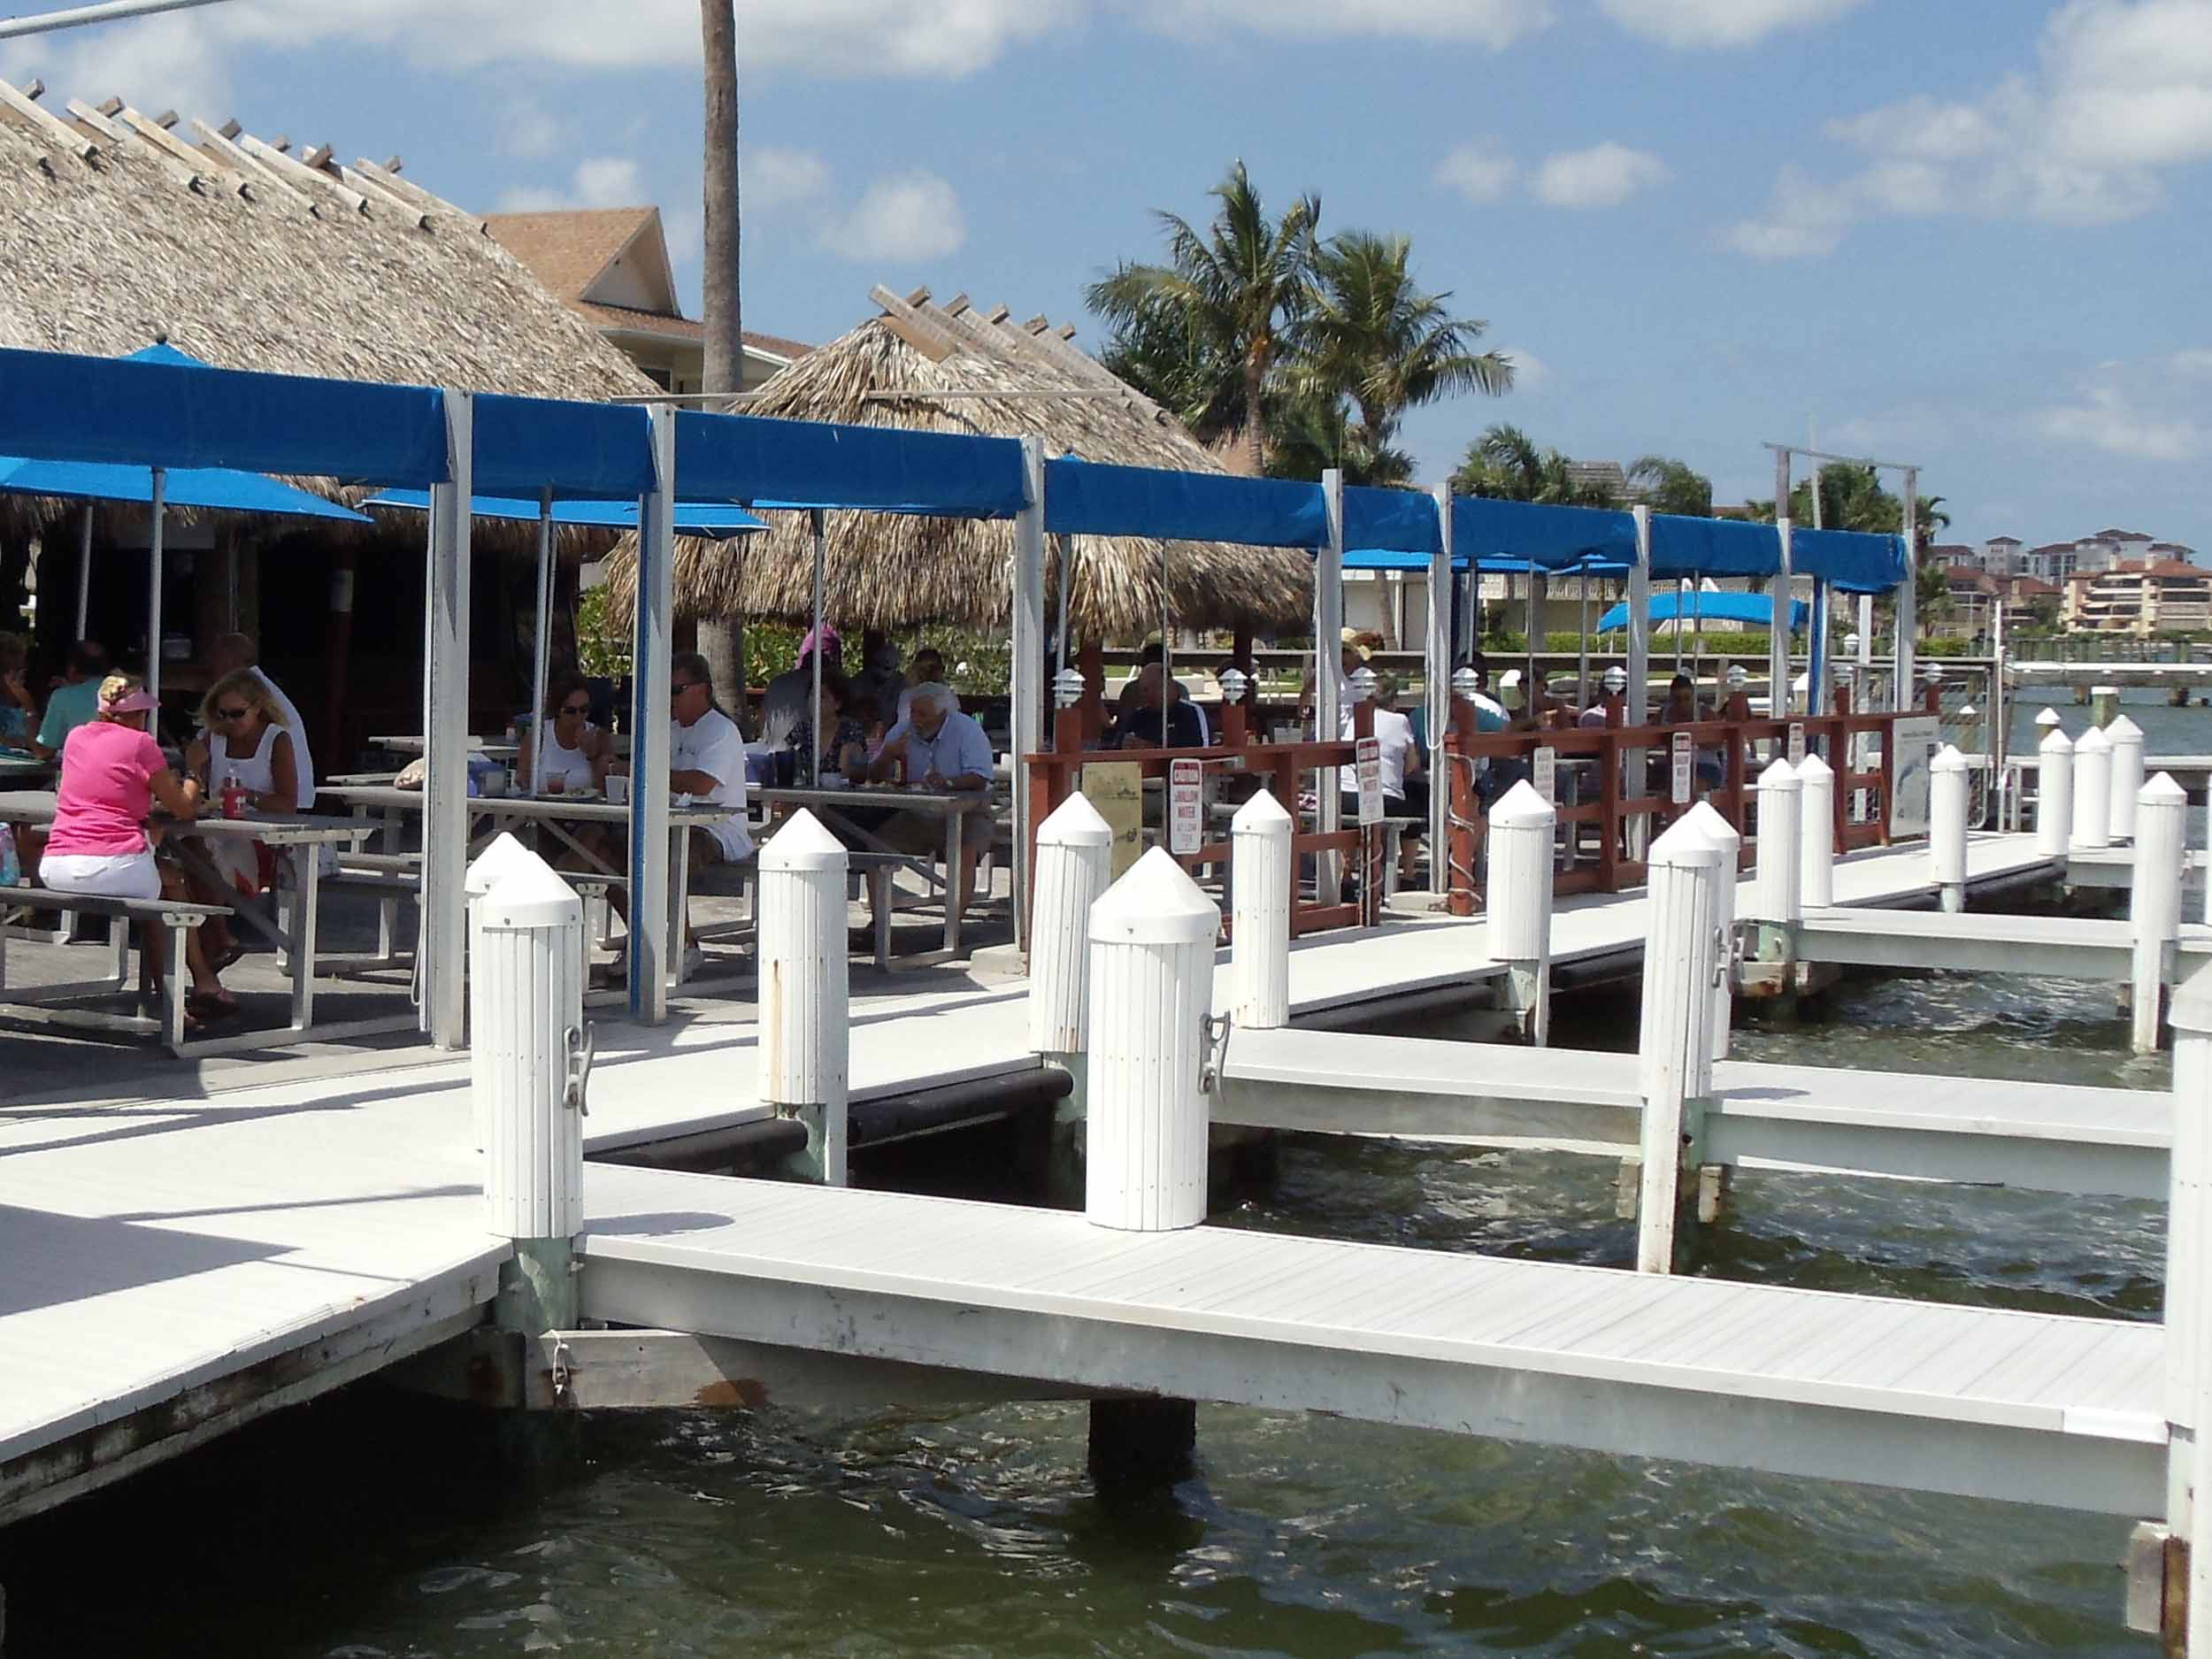 Snook Inn Seating Area and Boat Docks